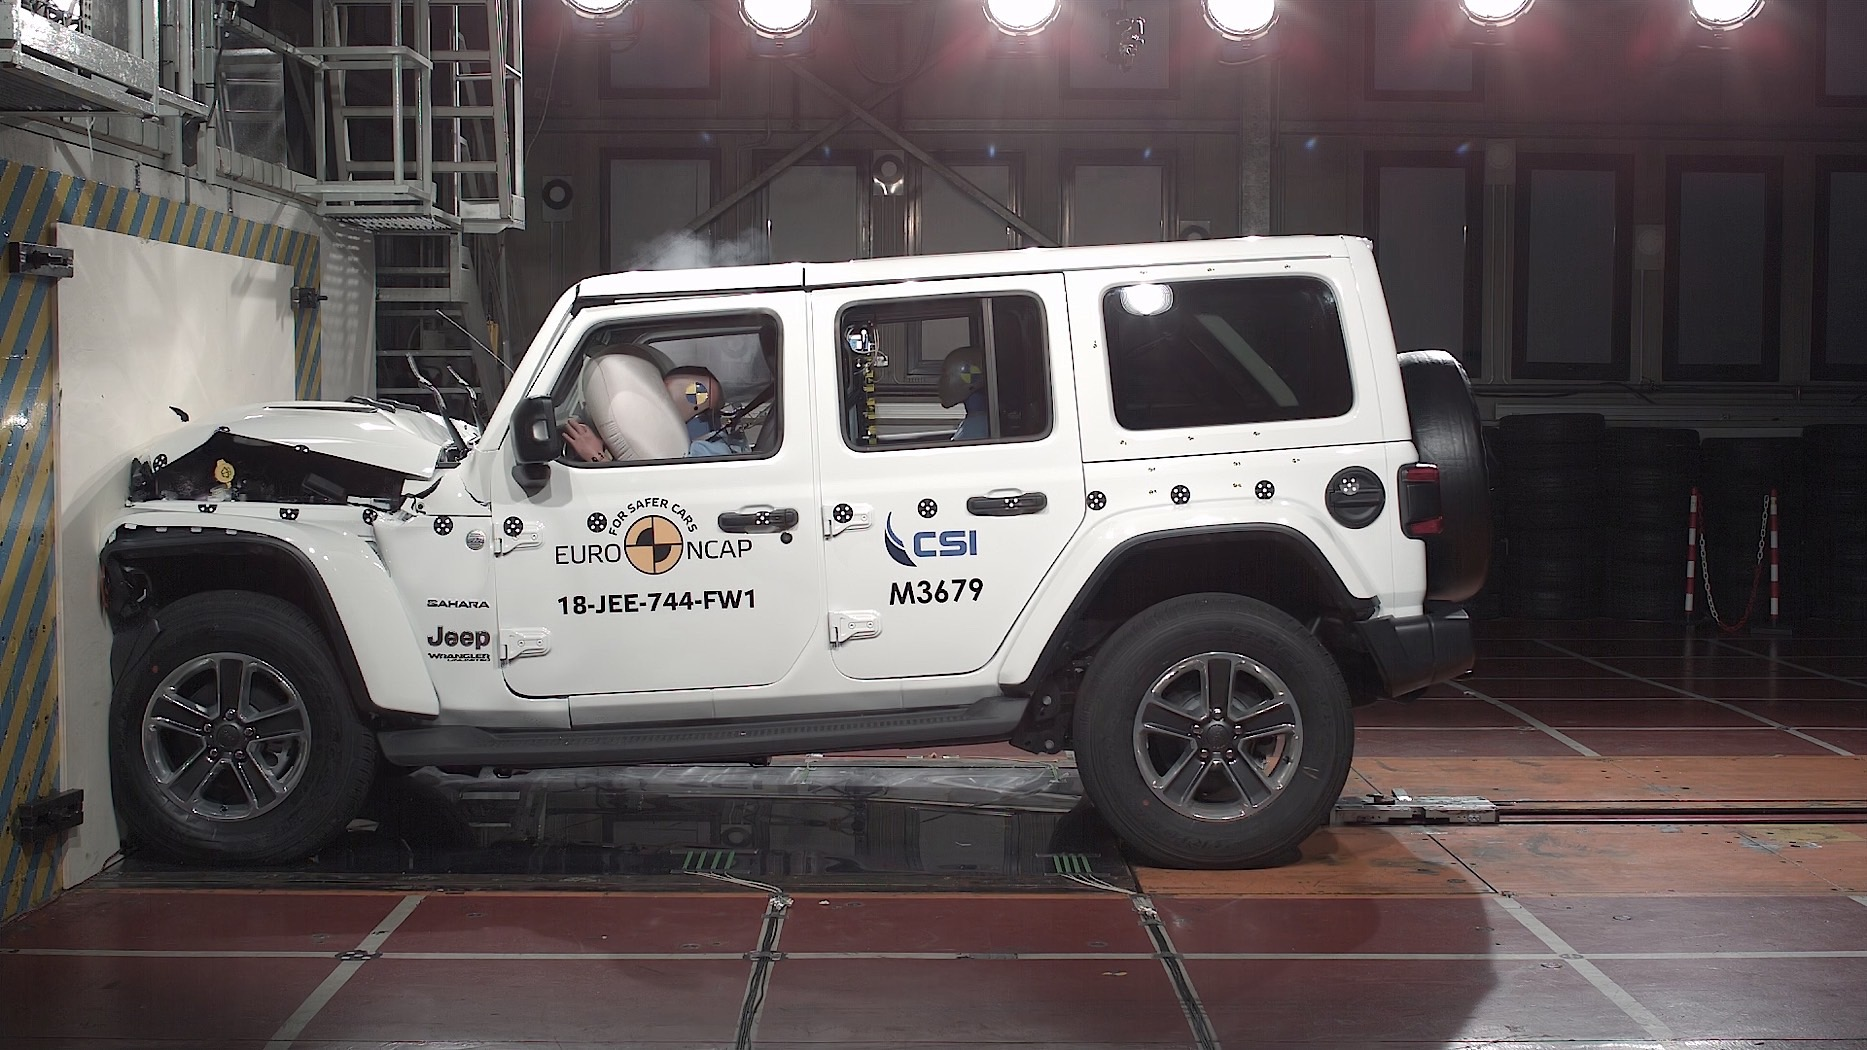 Jeep Wrangler scores 1 star in European crash tests